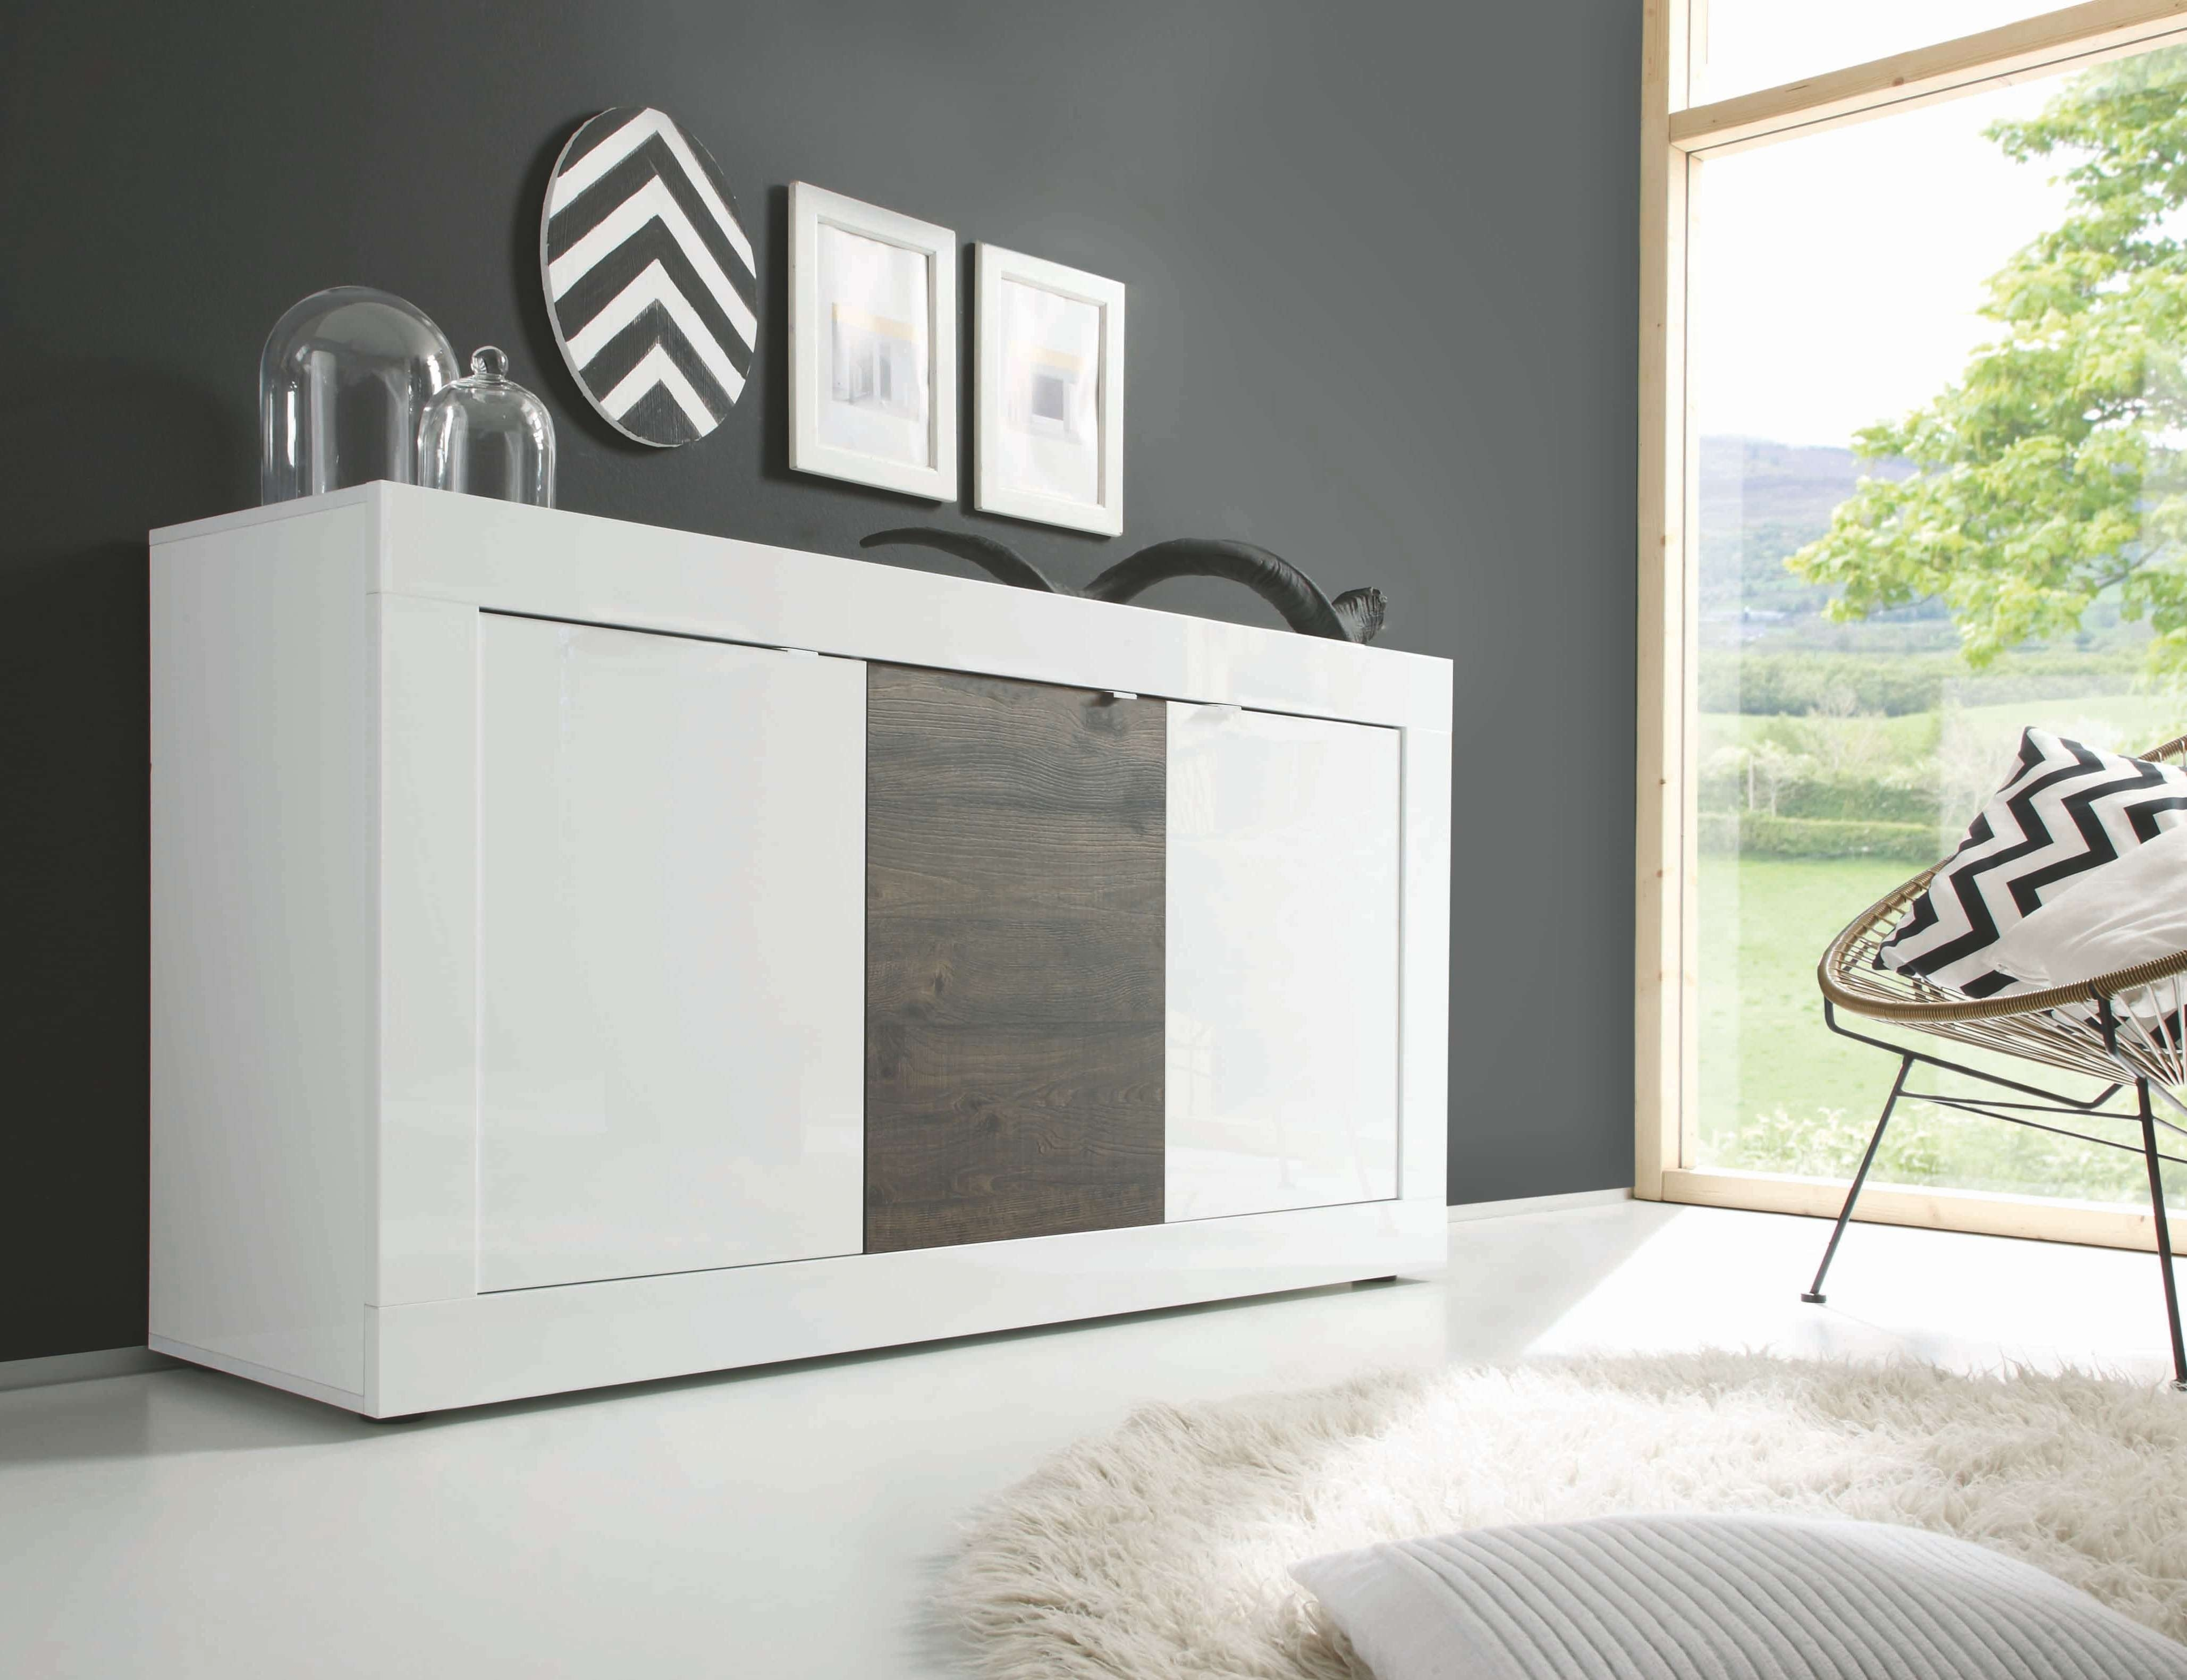 Basic 3 Door Sideboard, White + Wenge Buy Online At Best Price Pertaining To Wenge Sideboards (View 7 of 20)